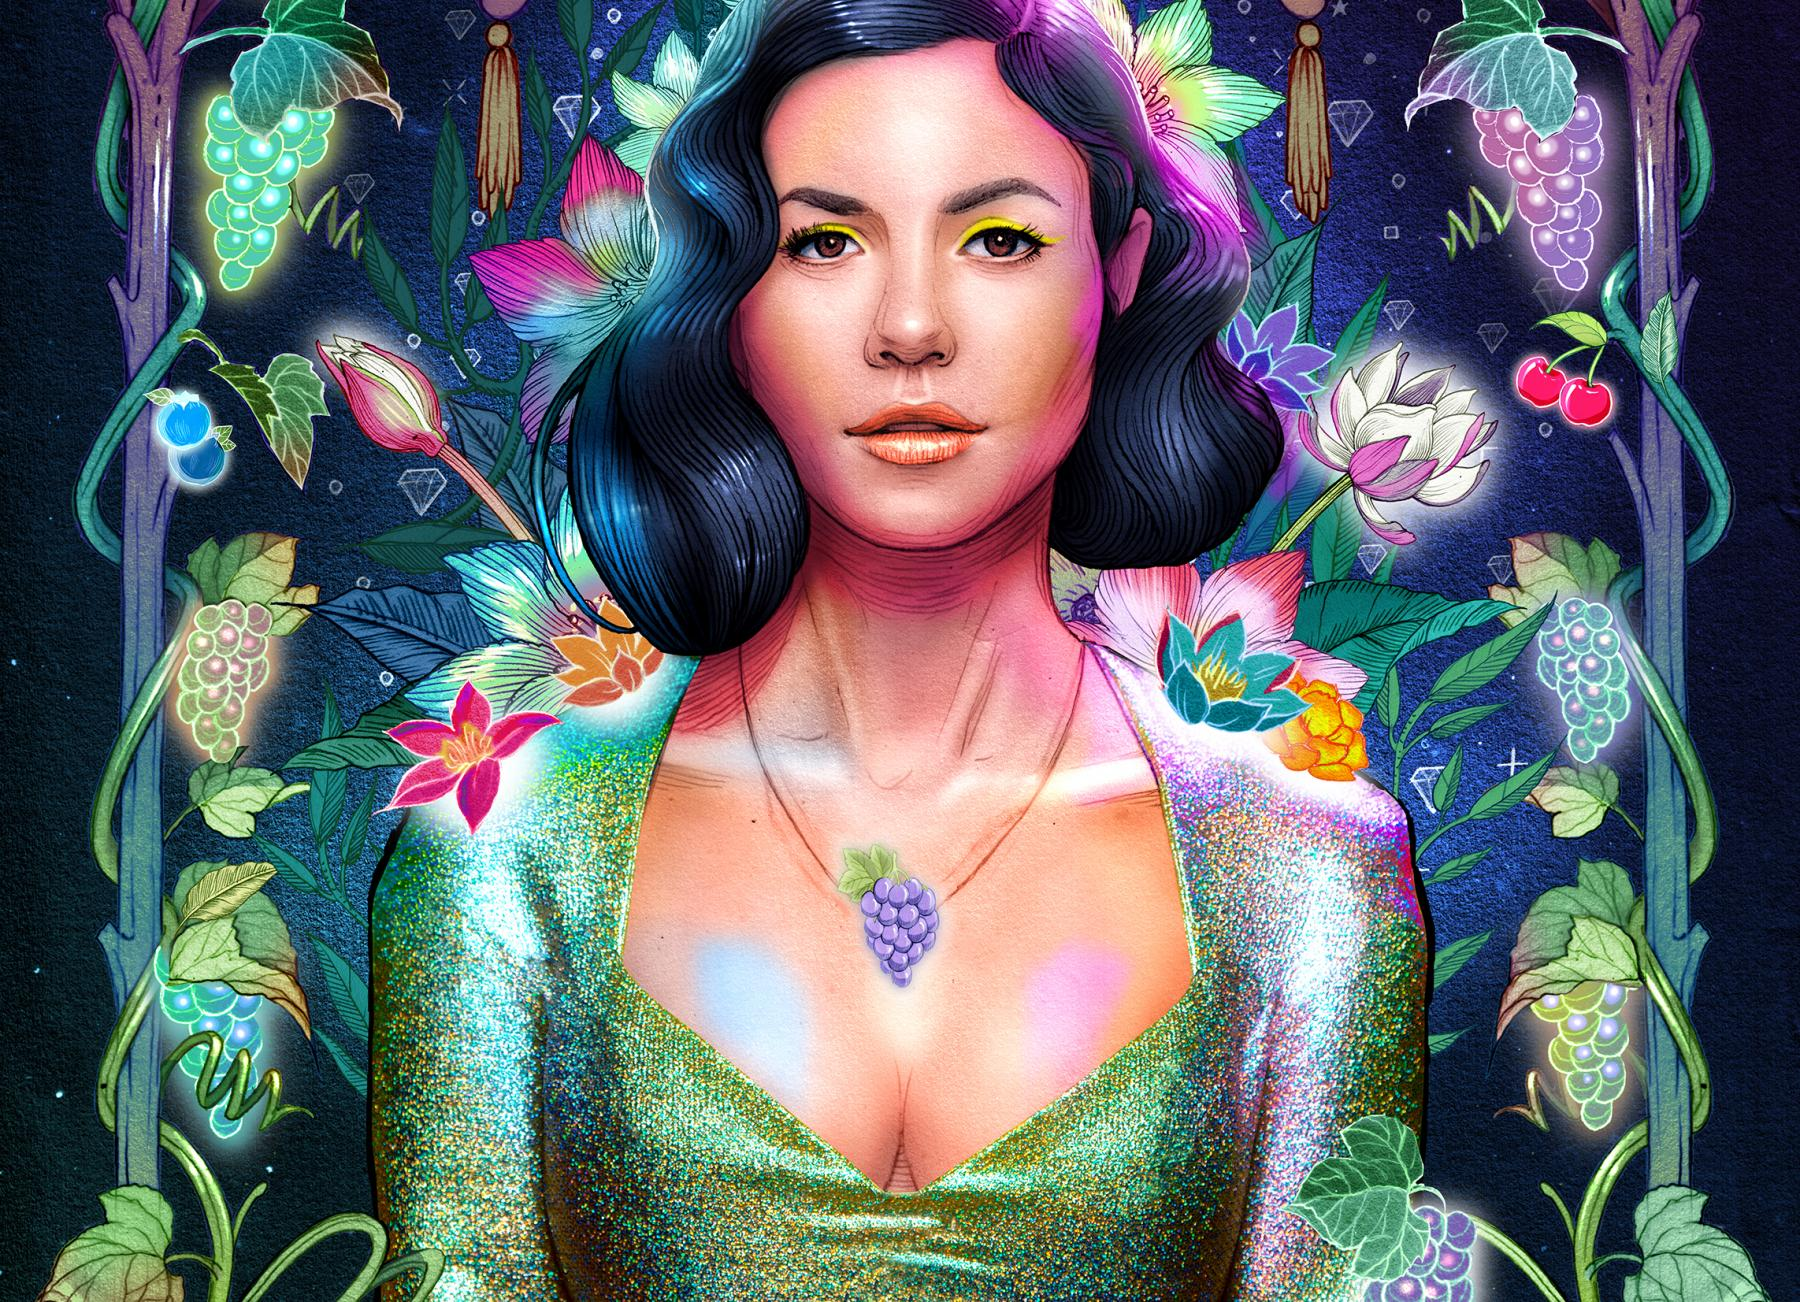 HQ Marina And The Diamonds Wallpapers   File 610.51Kb